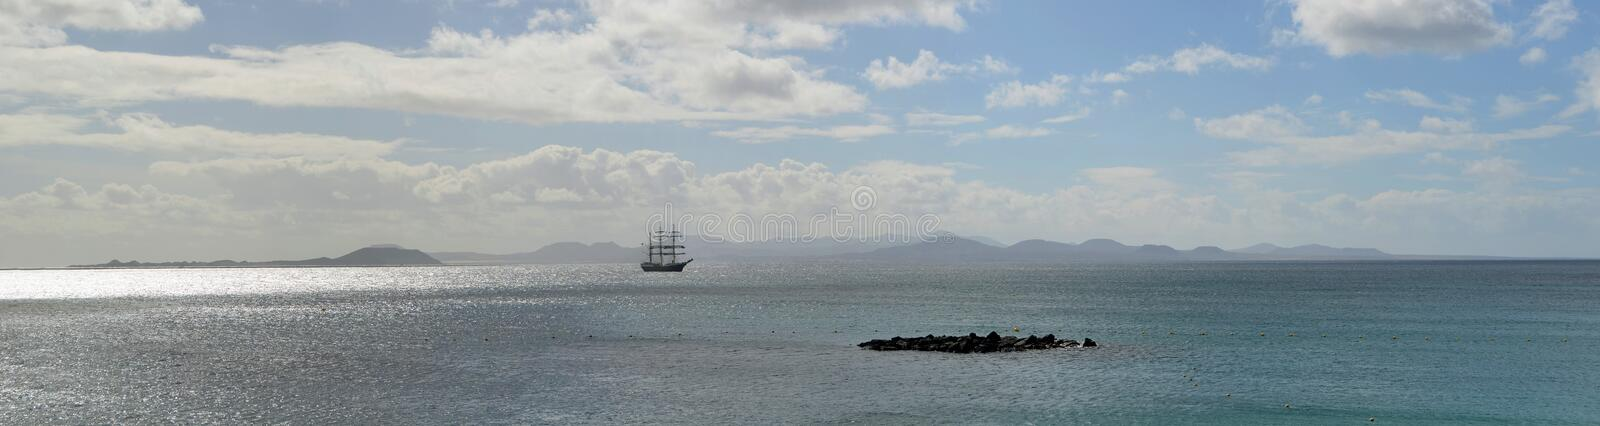 Square Rigged Tall Ship with the Northern Coast of Fuerteventura royalty free stock images